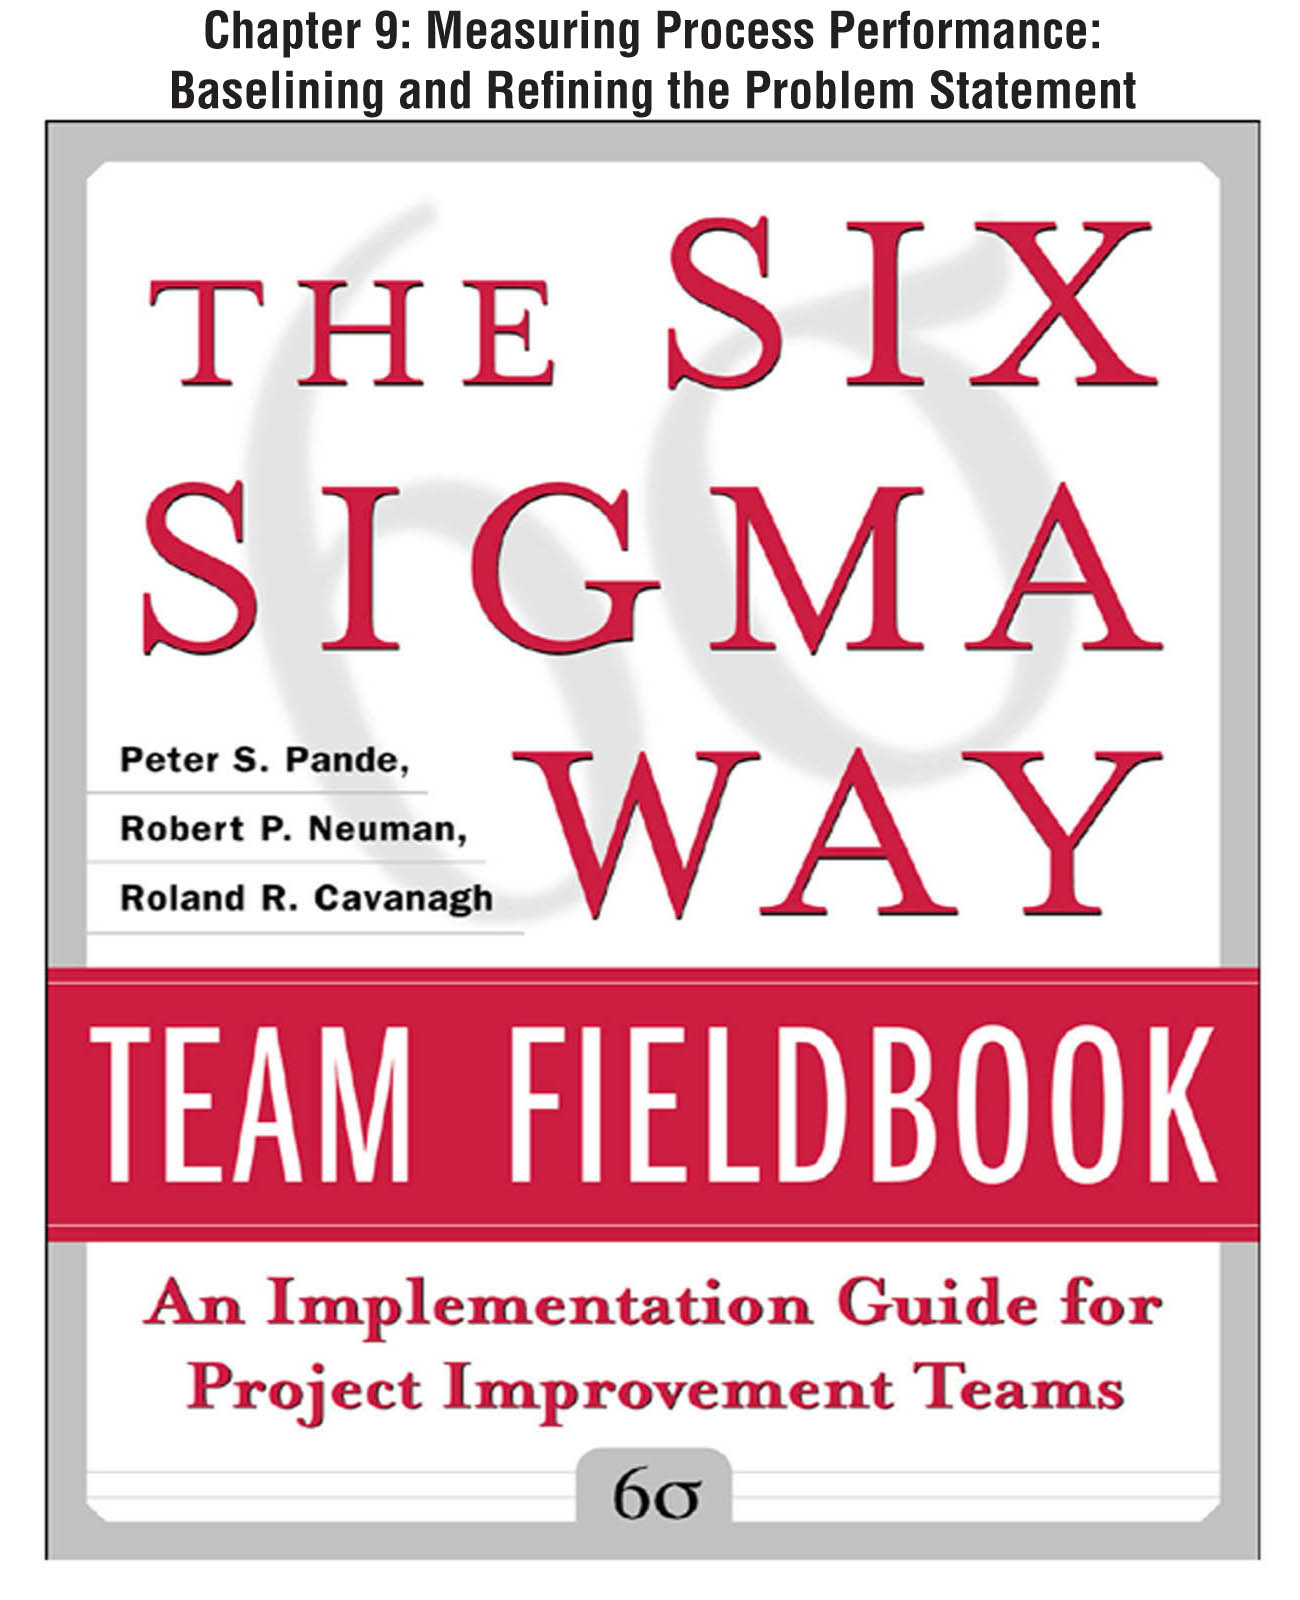 The Six Sigma Way Team Fieldbook, Chapter 9 - Measuring Process Performance Baselining and Refining the Problem Statement